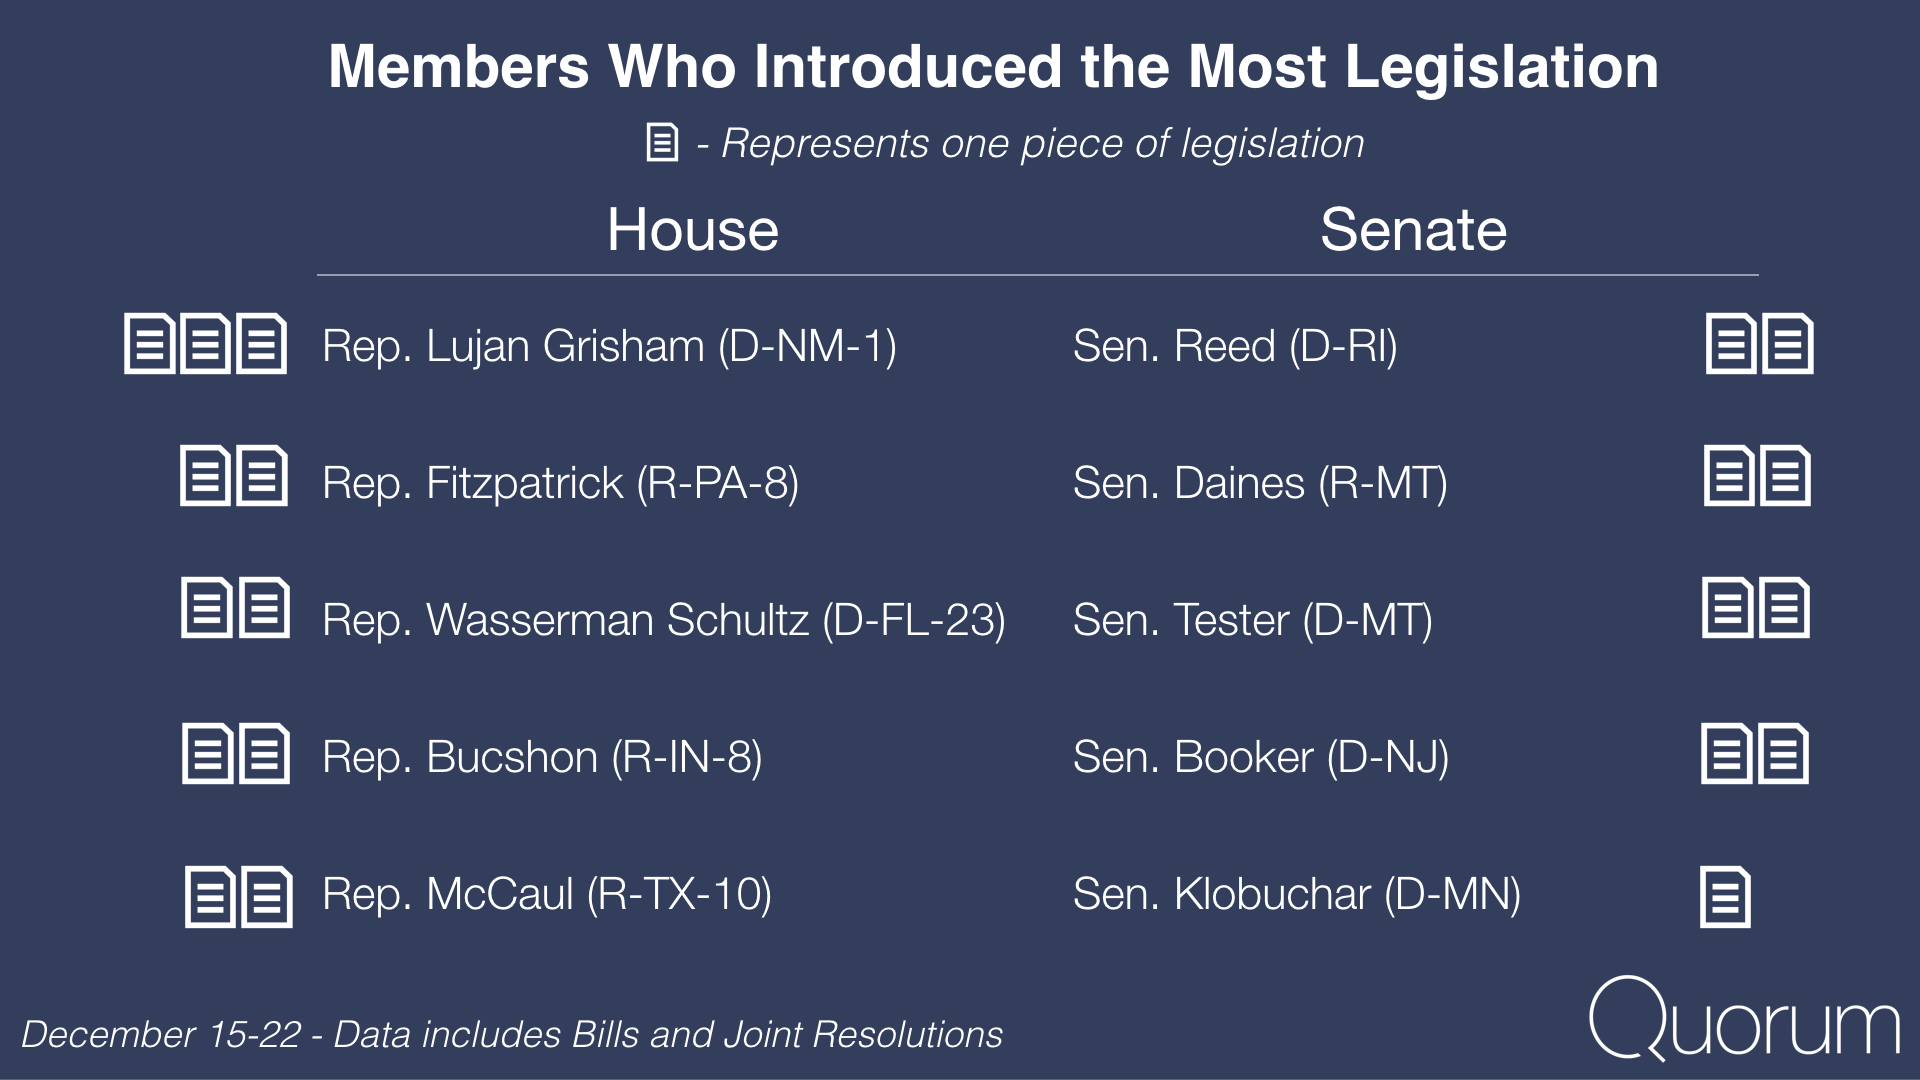 Members who introduced the most legislation